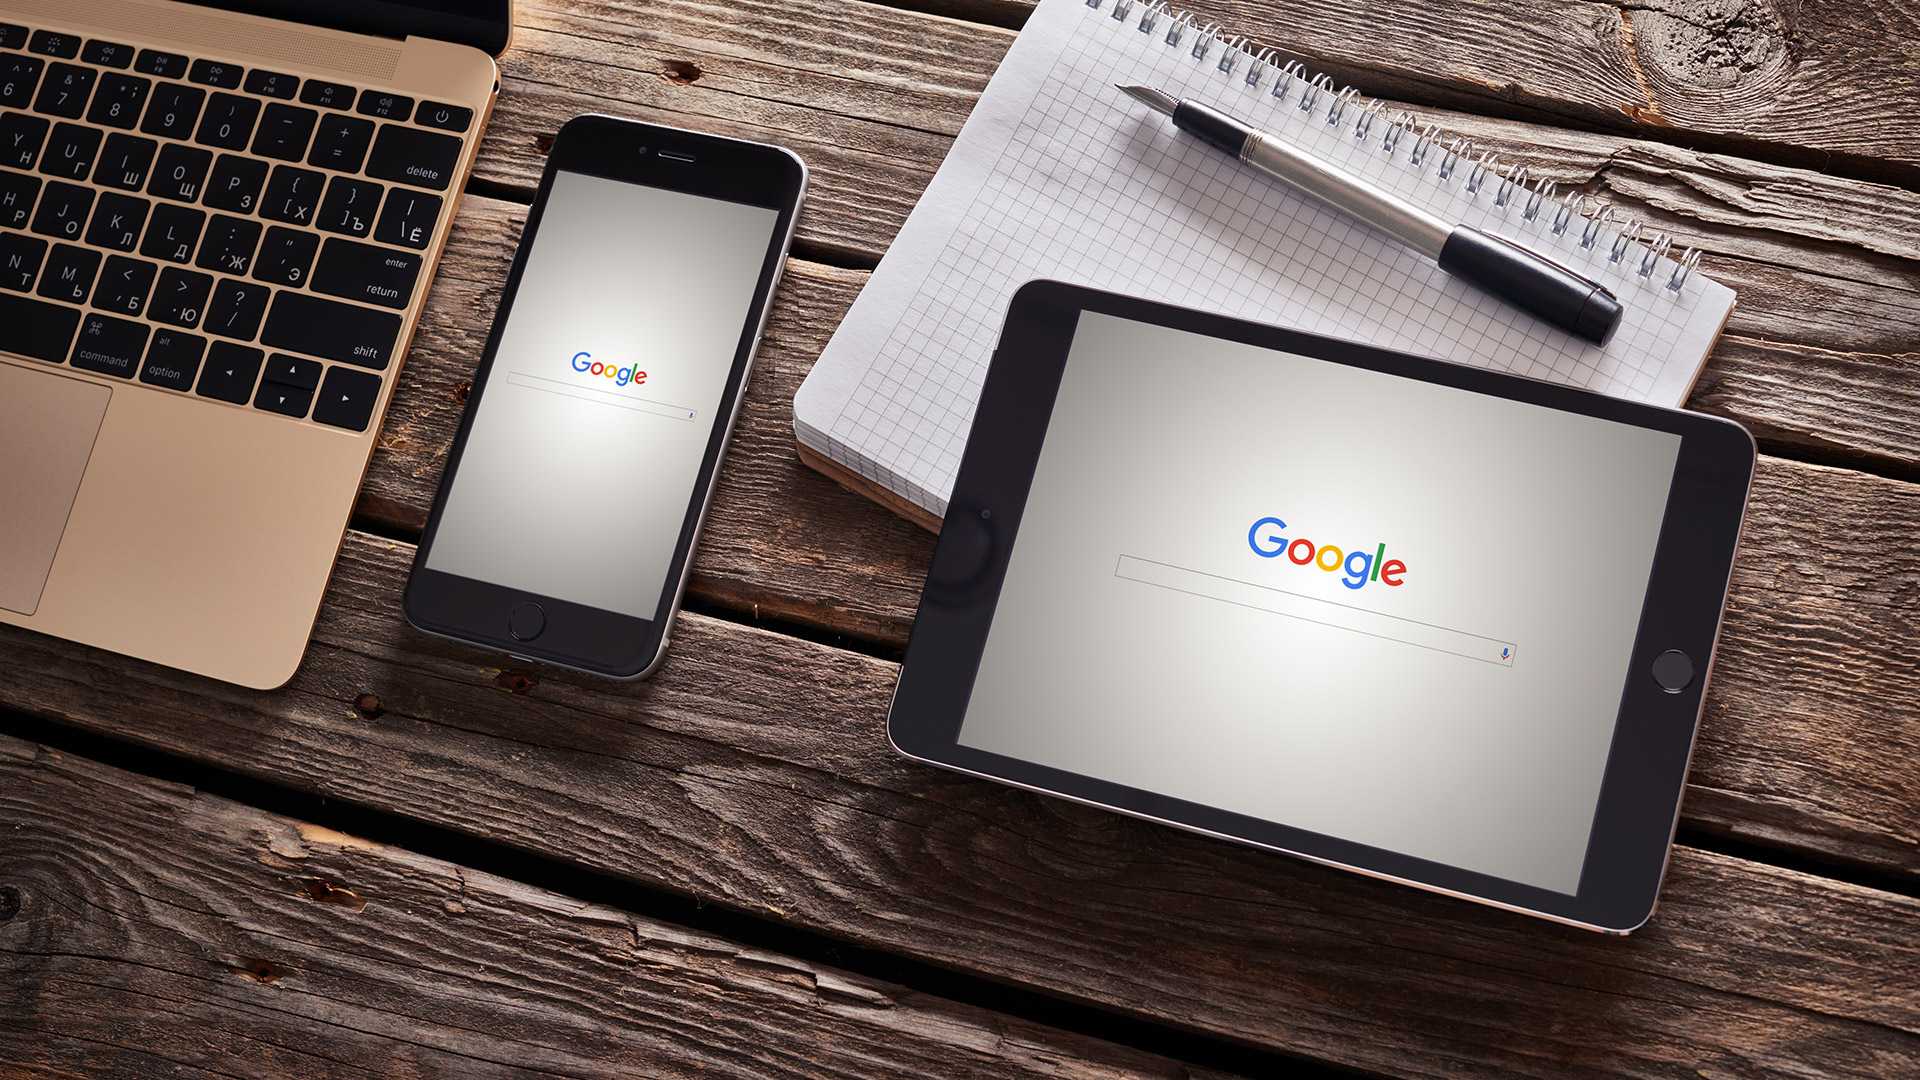 google-mobile-search-apps-ss-1920